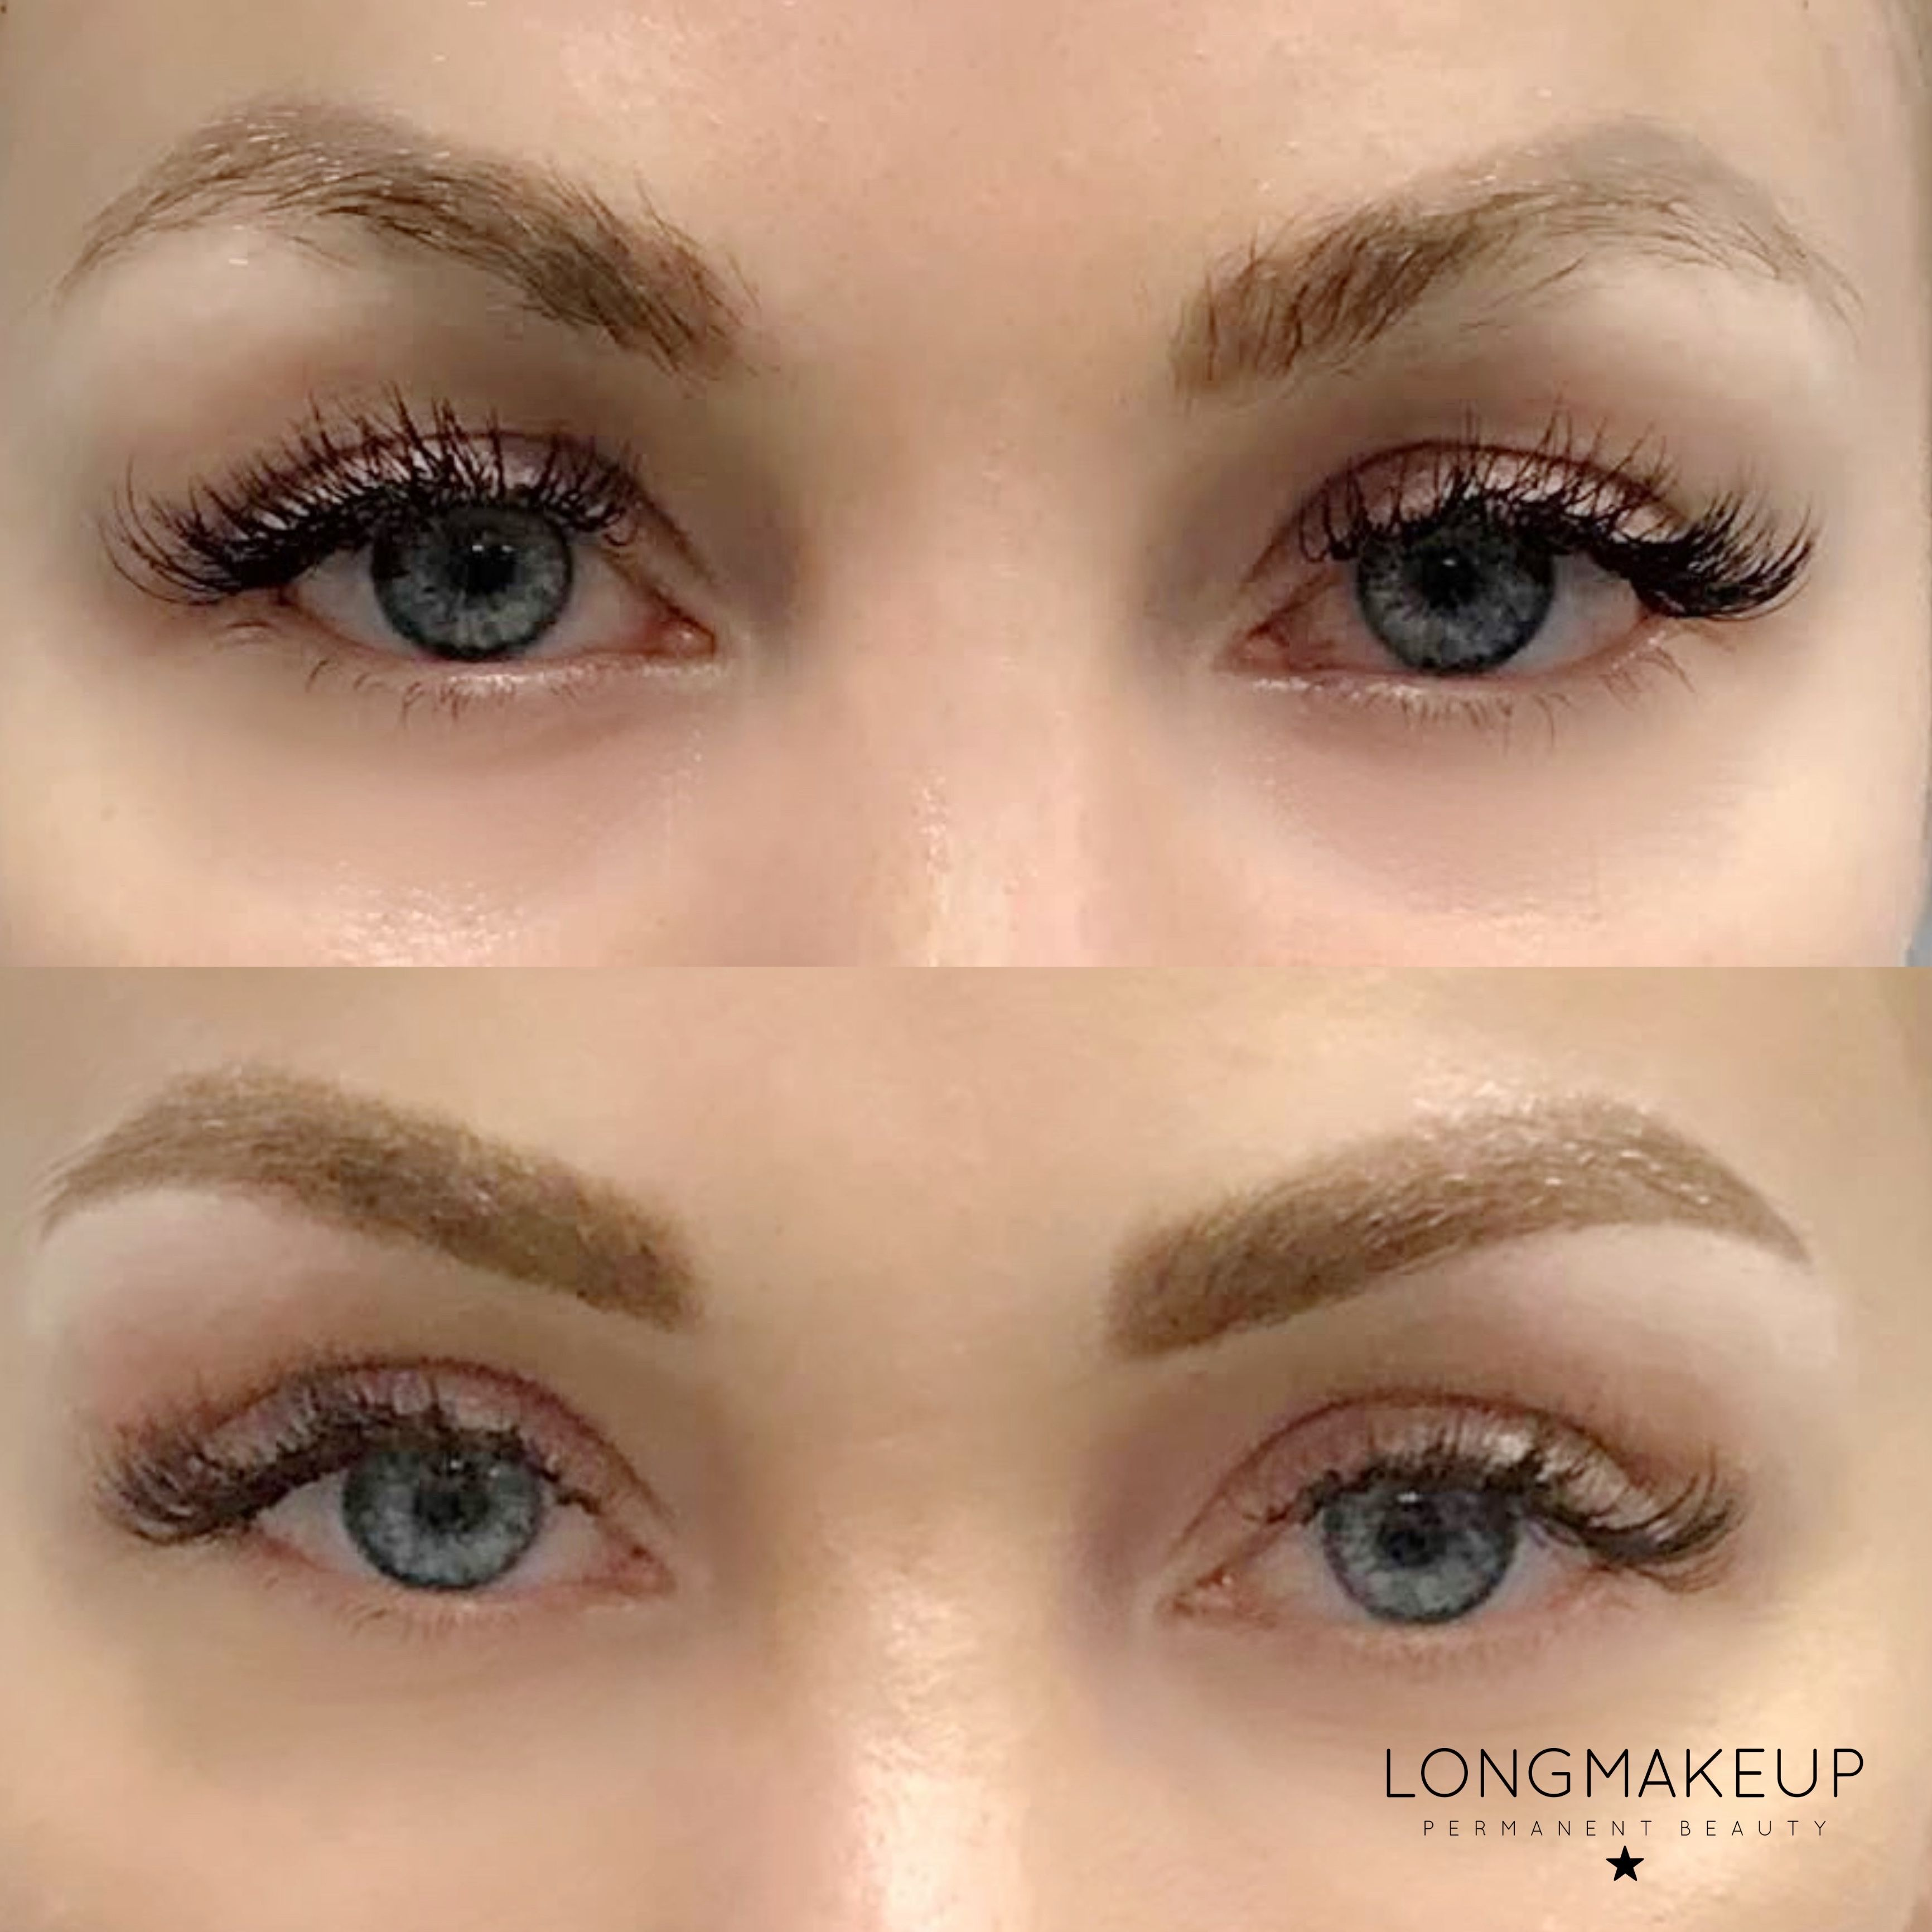 Before and after eyebrows tattoo color correction